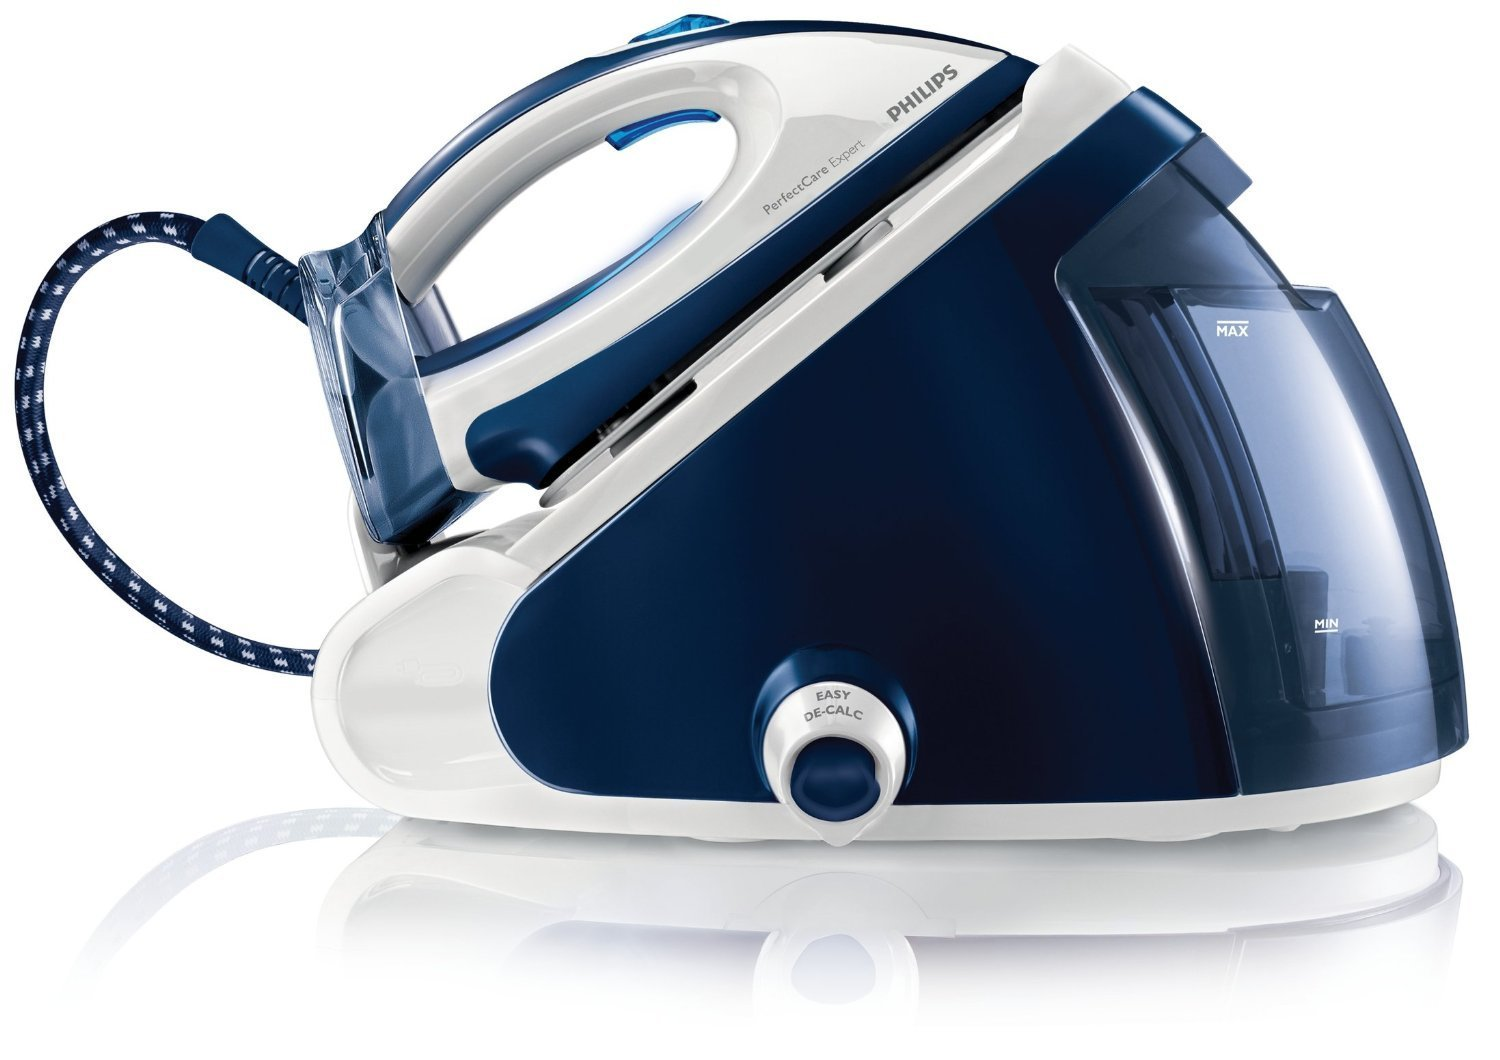 Philips GC9222-02 PerfectCare Expert Steam Generator Iron